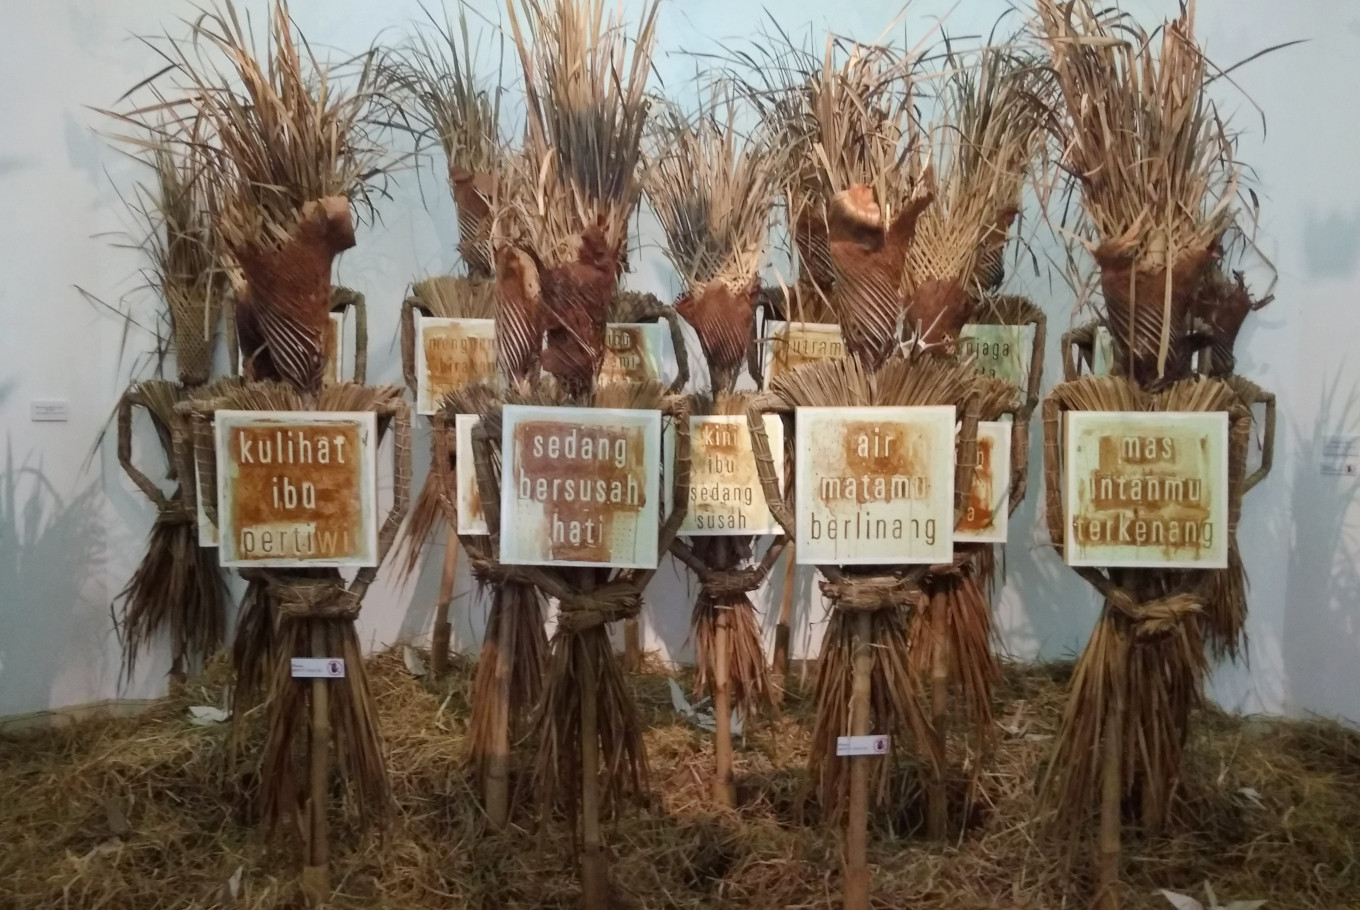 Hari Budiono's 'Memedi Sawah' exhibition scares away fear